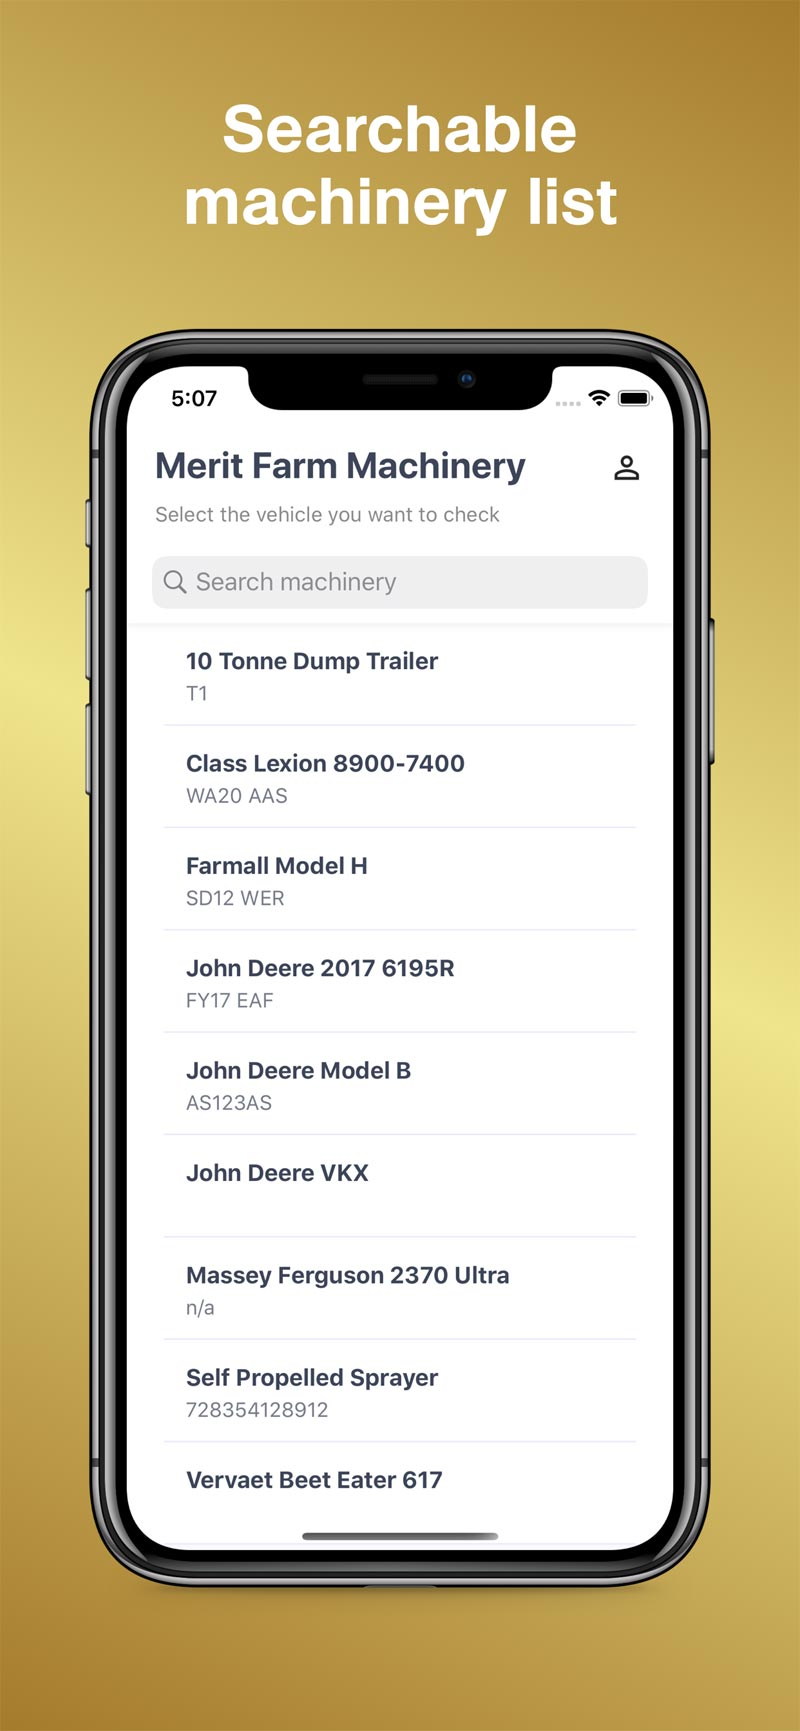 Searchable Machinery List - MeritAgCheck App